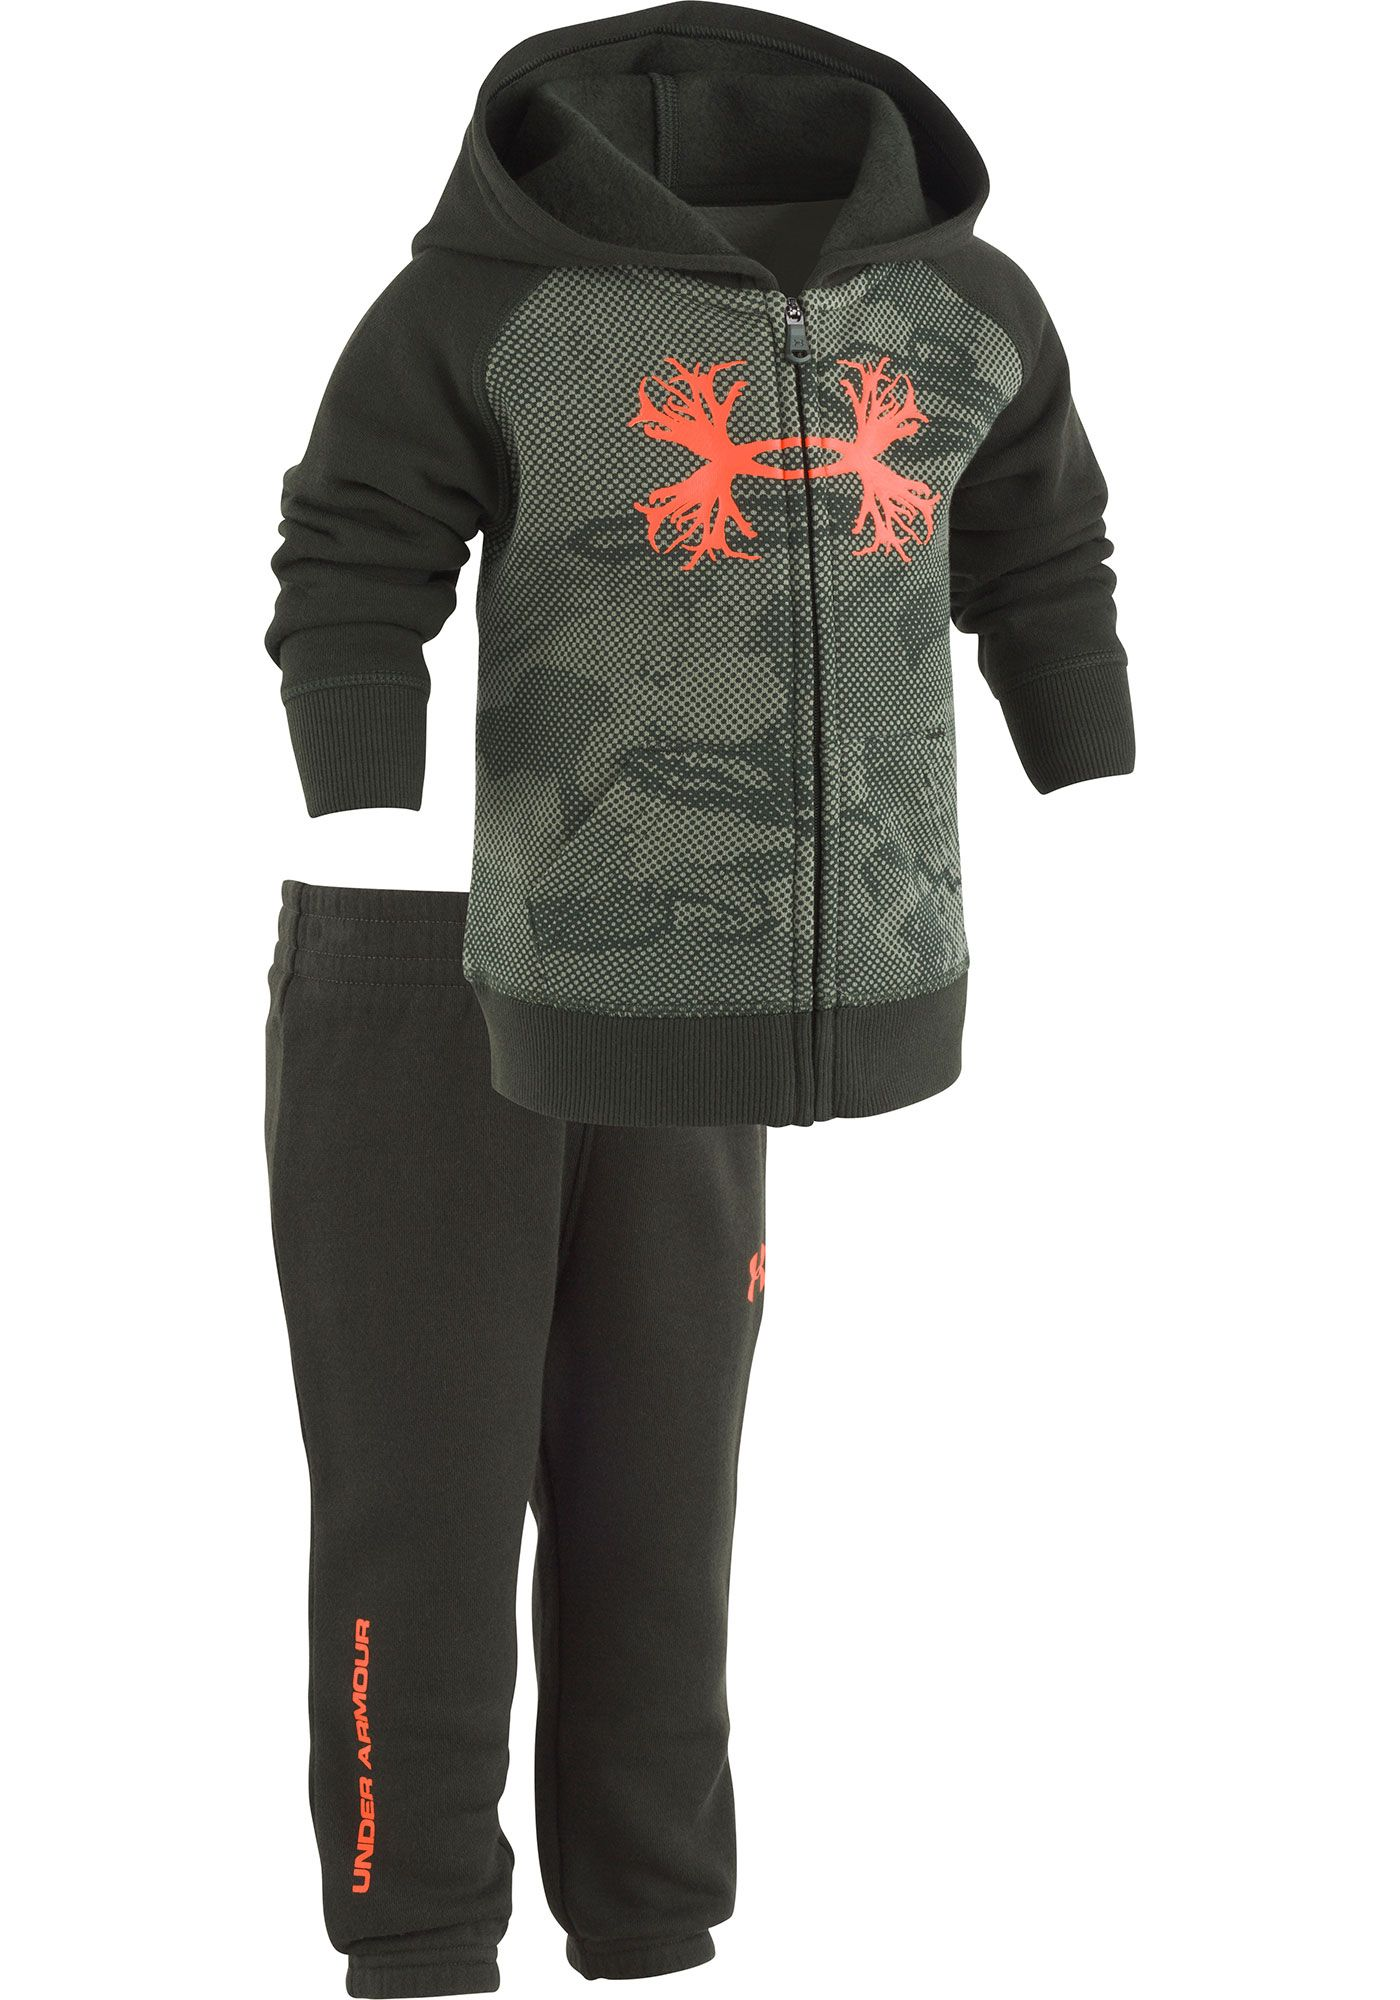 Under Armour Newborn Boys' Rival Fleece Reaper Full-Zip Hoodie and Pant Set